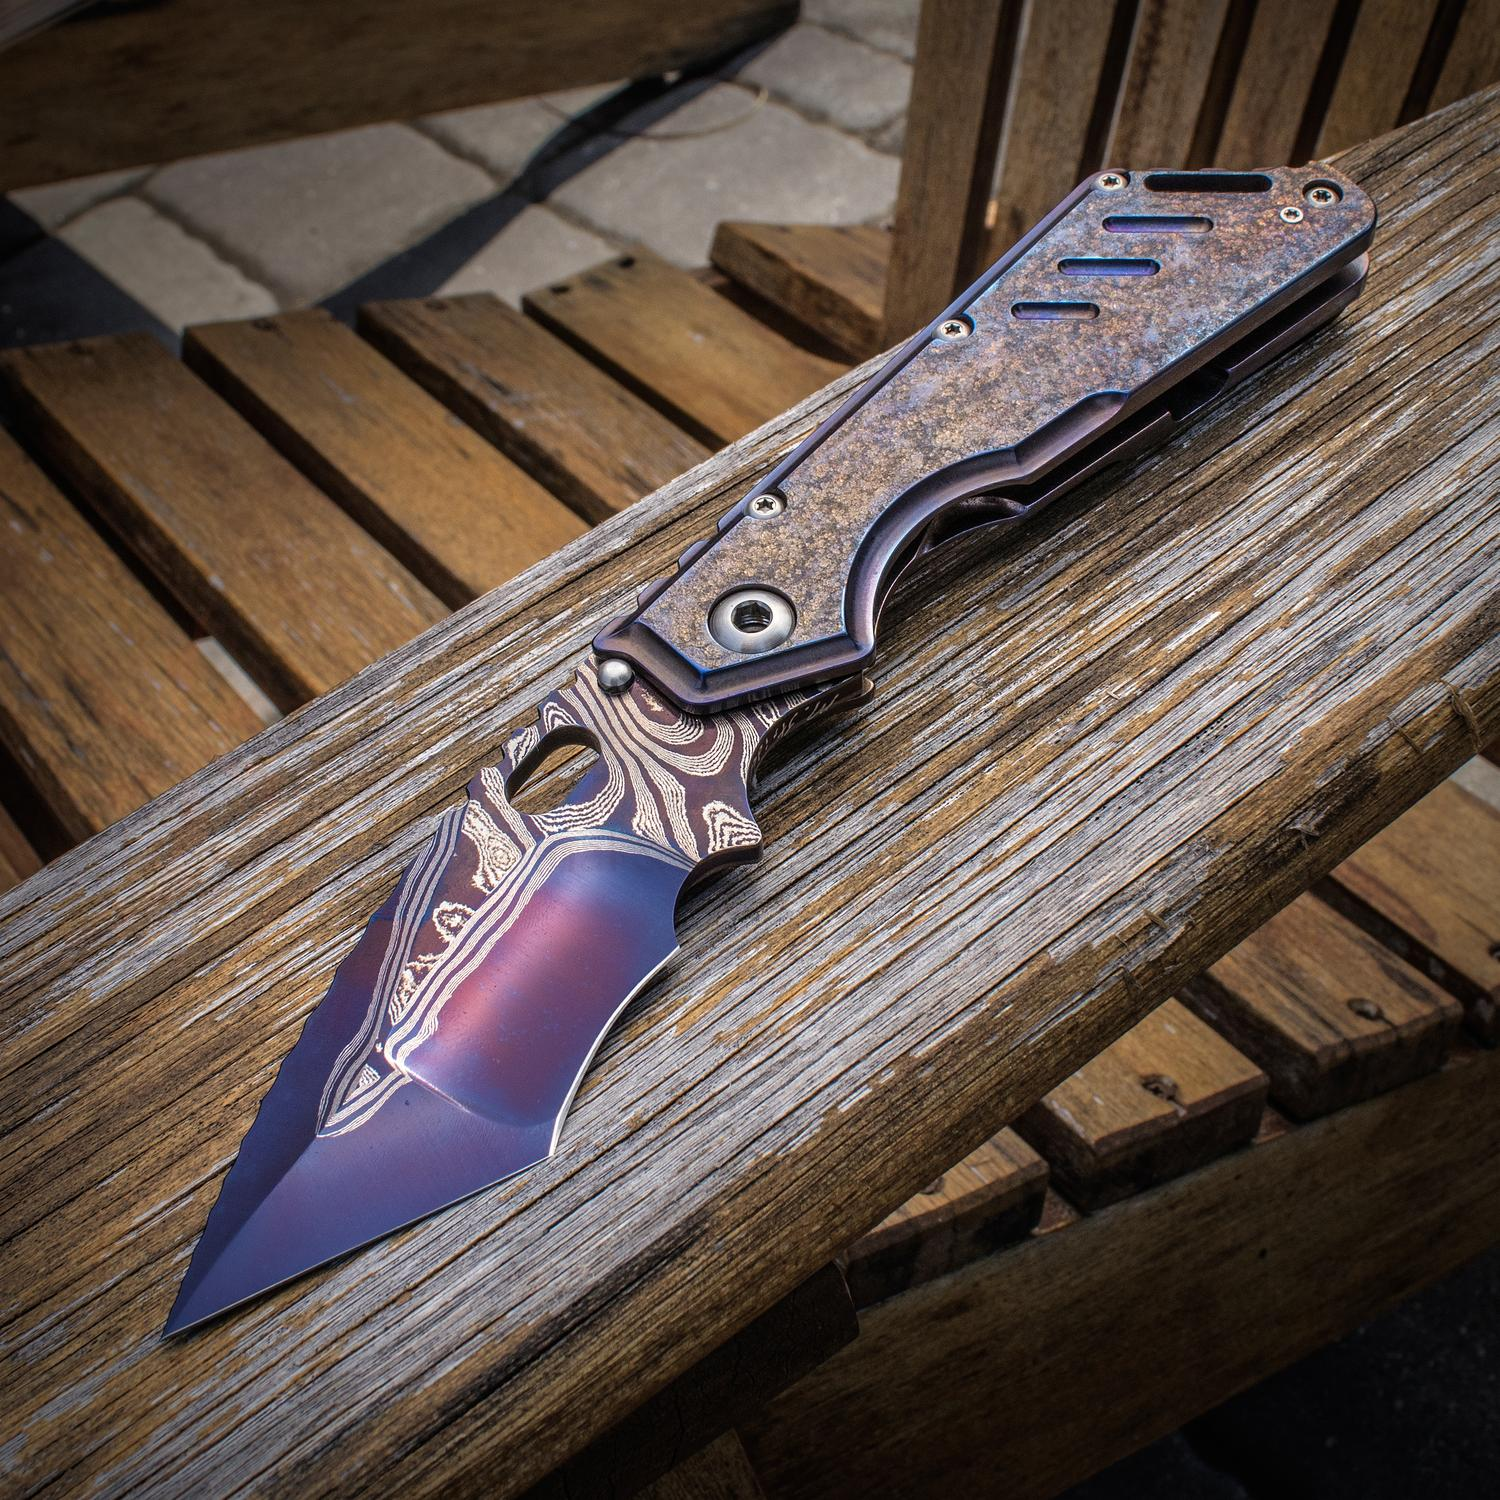 Mick Strider Custom XL SnG Folding Knife 4.5 inch Damascus Hand Ground Nightmare Tanto Blade, Textured Flamed Titanium Handles